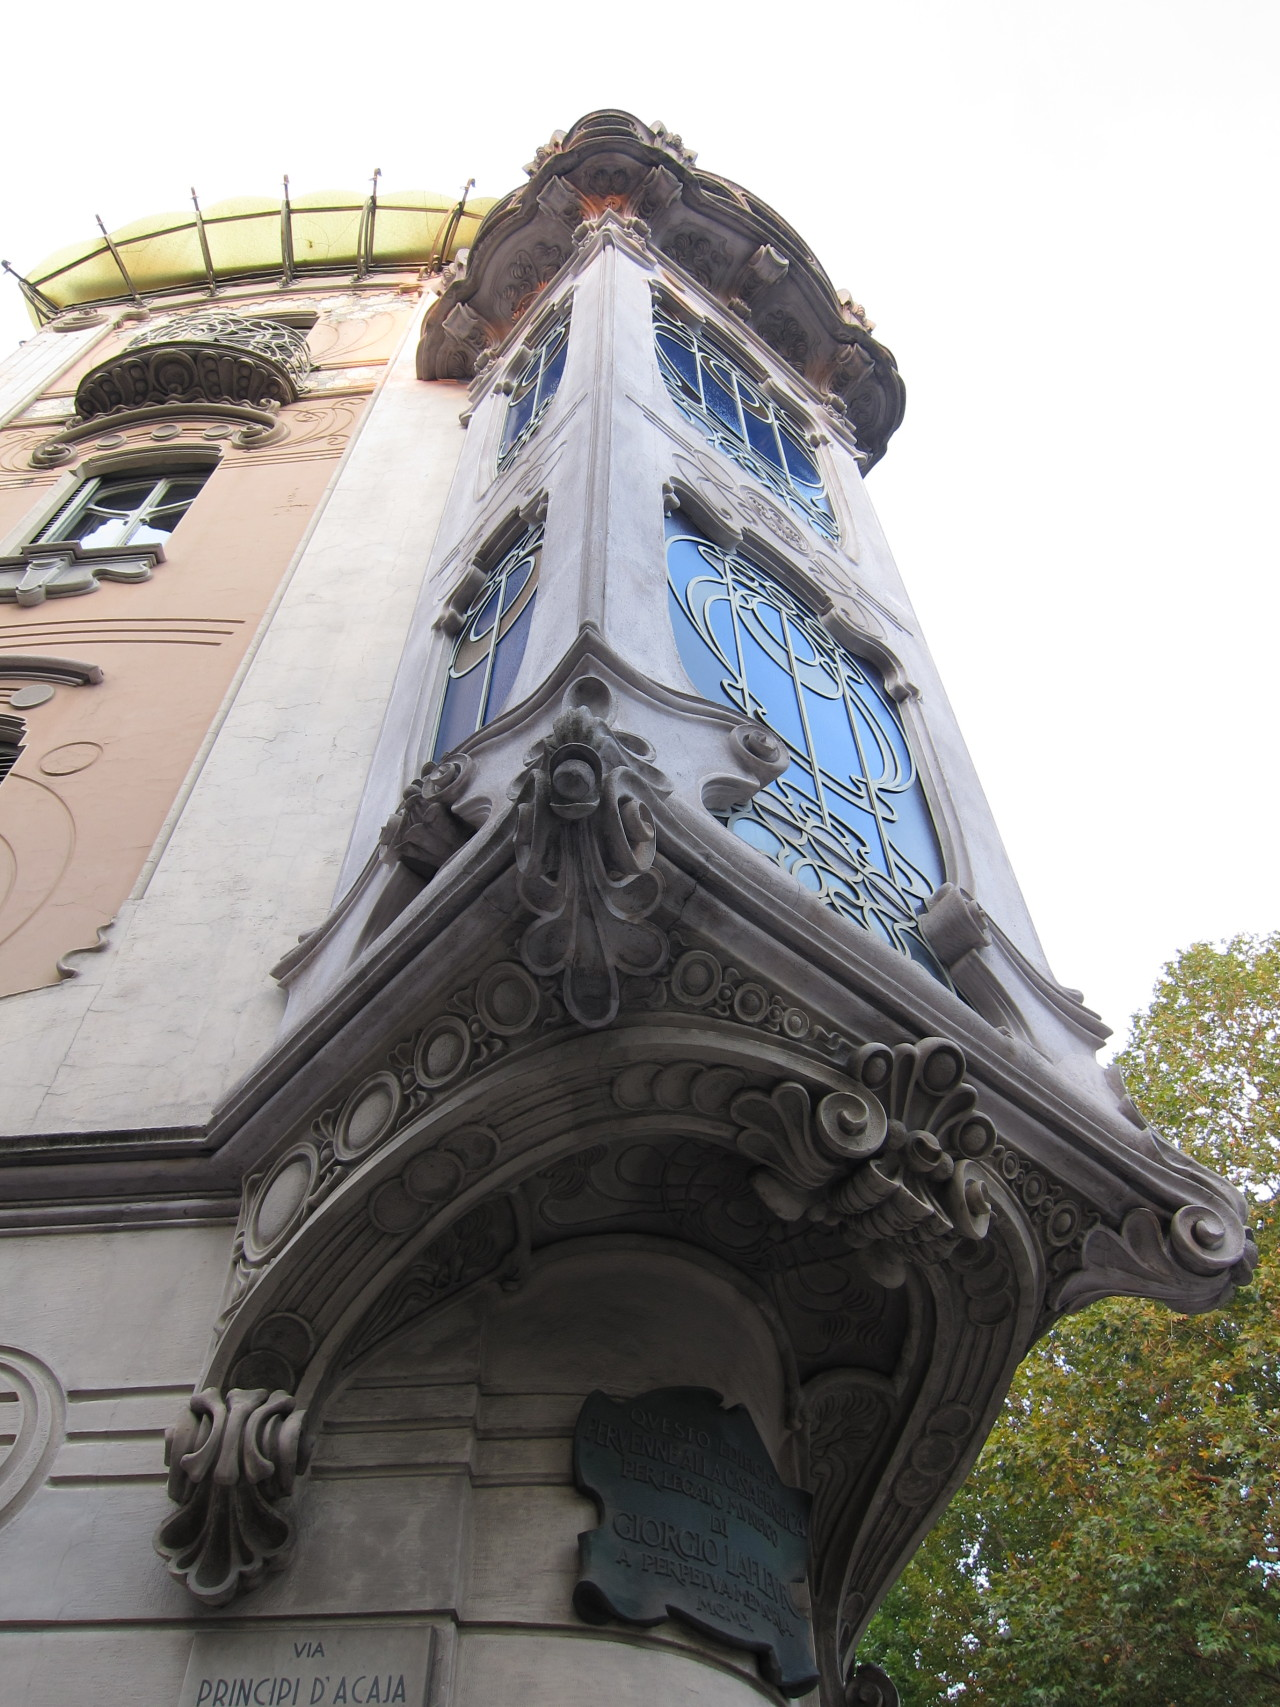 Art Nouveau (Stile Floreale) window bay, Turin, Italy.